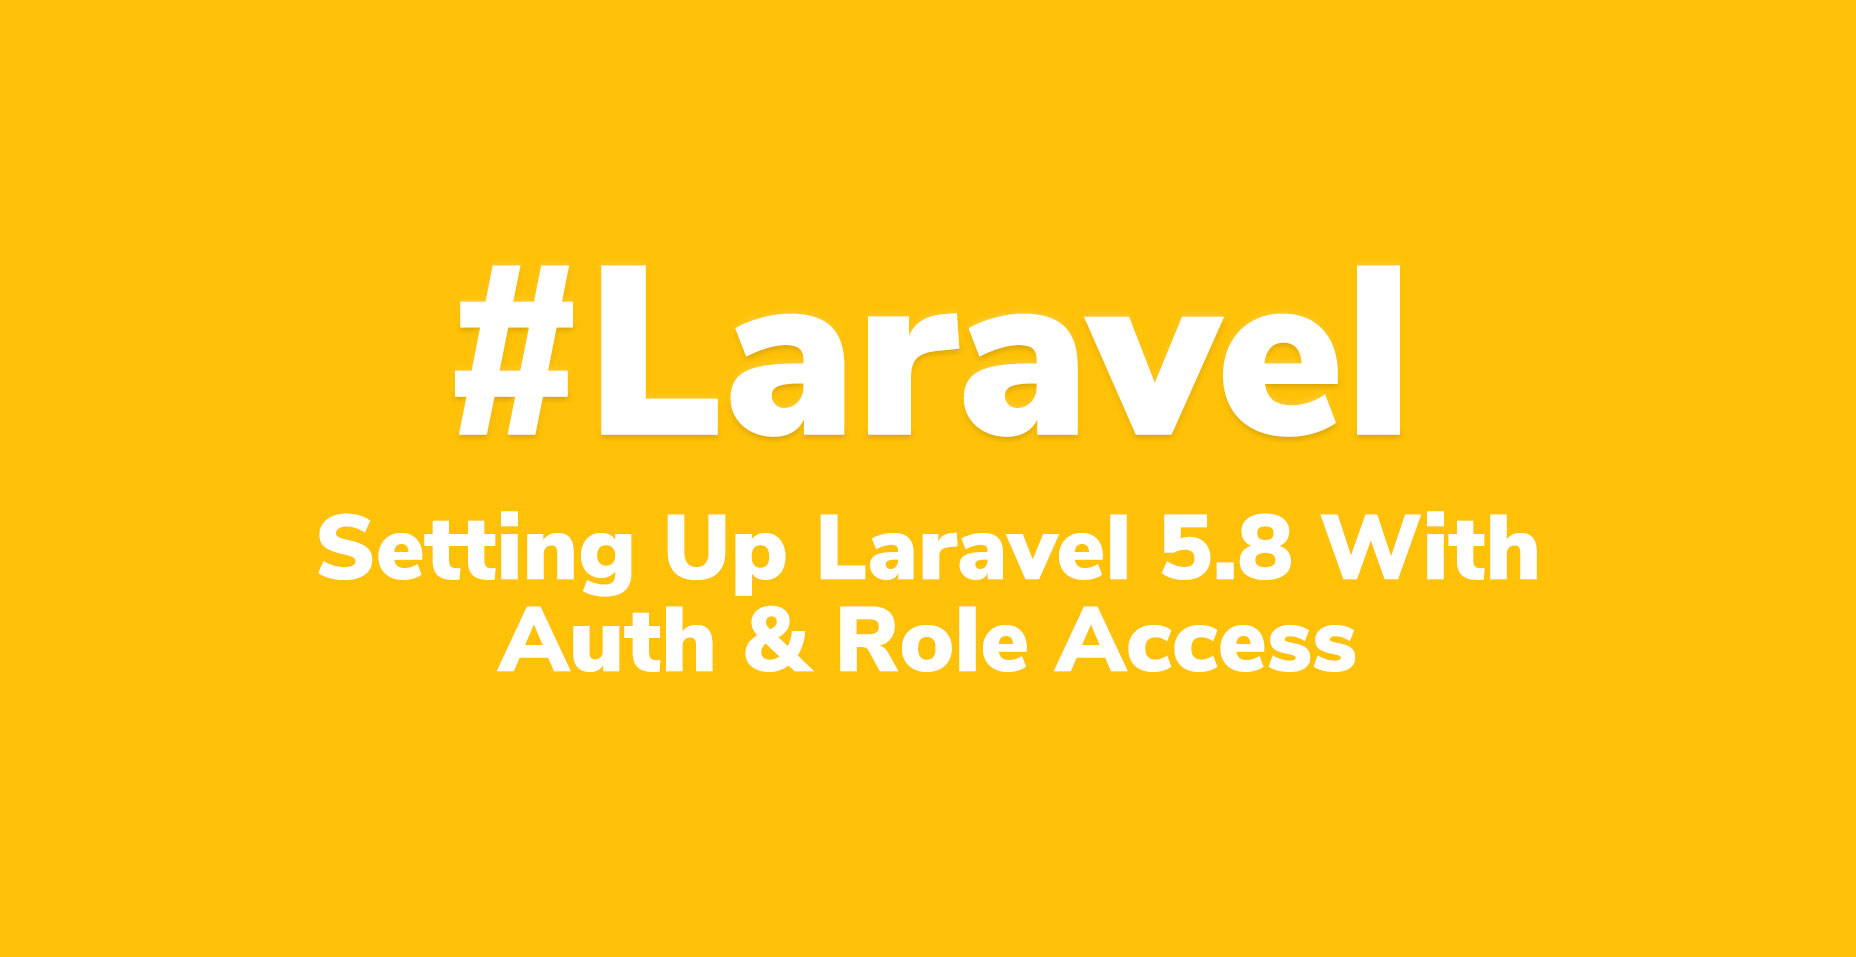 Setting Up Laravel 5 8 With Authentication & Role Based Access